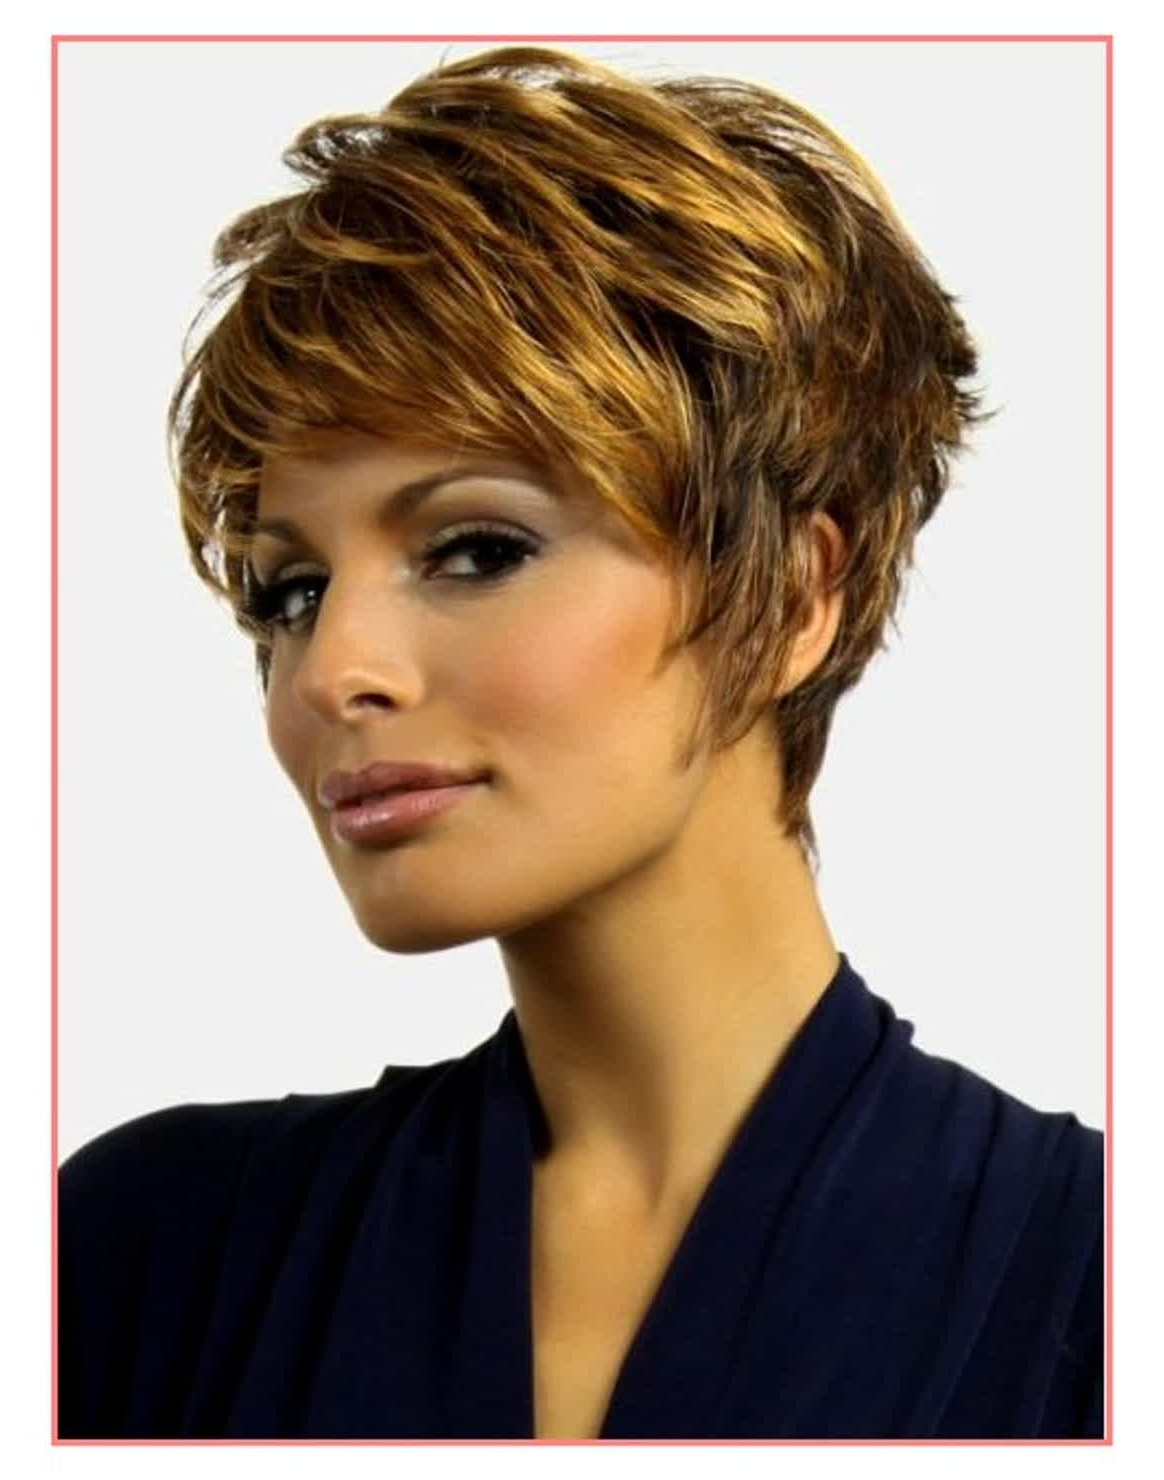 Short Hairstyles For Oval Face | 30 Cute Pixie Cuts Short Hairstyles Pertaining To Short Haircuts For Oval Faces (View 14 of 25)